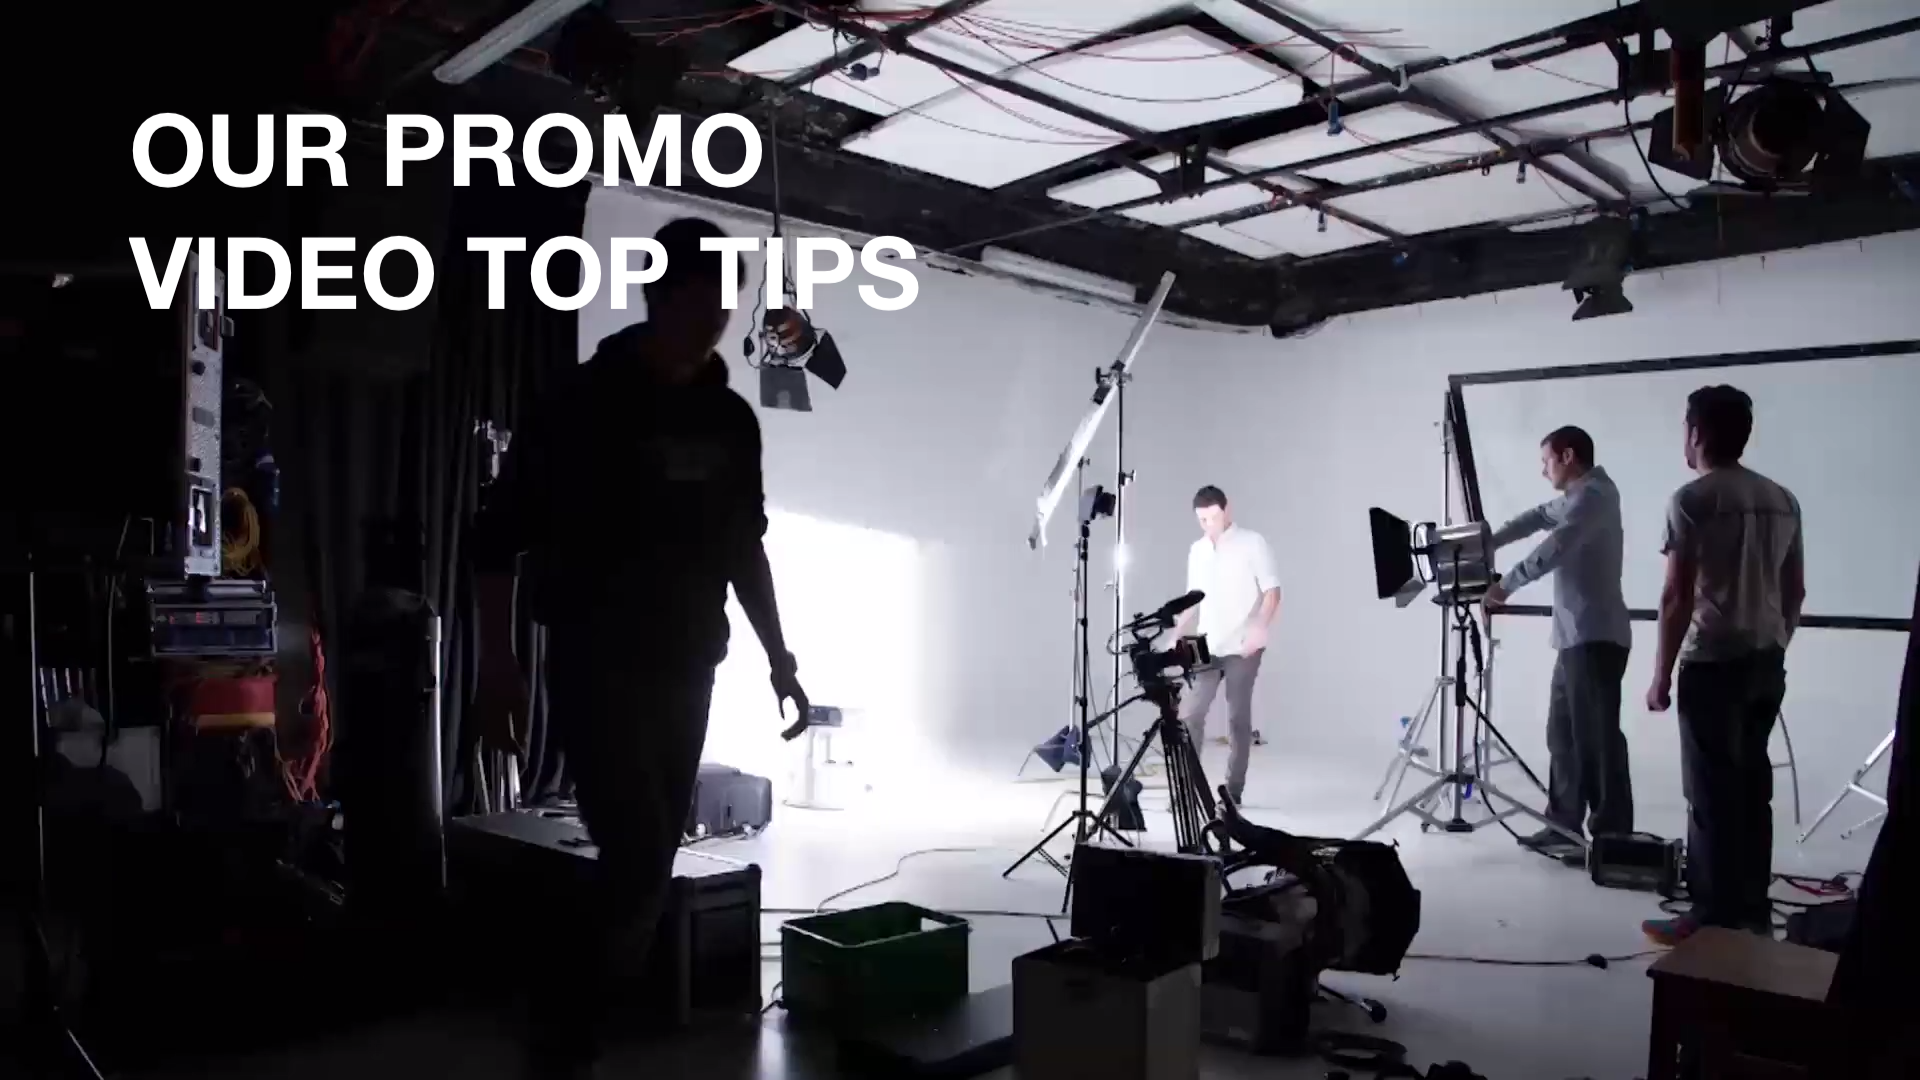 Our Promo Video Top Tips